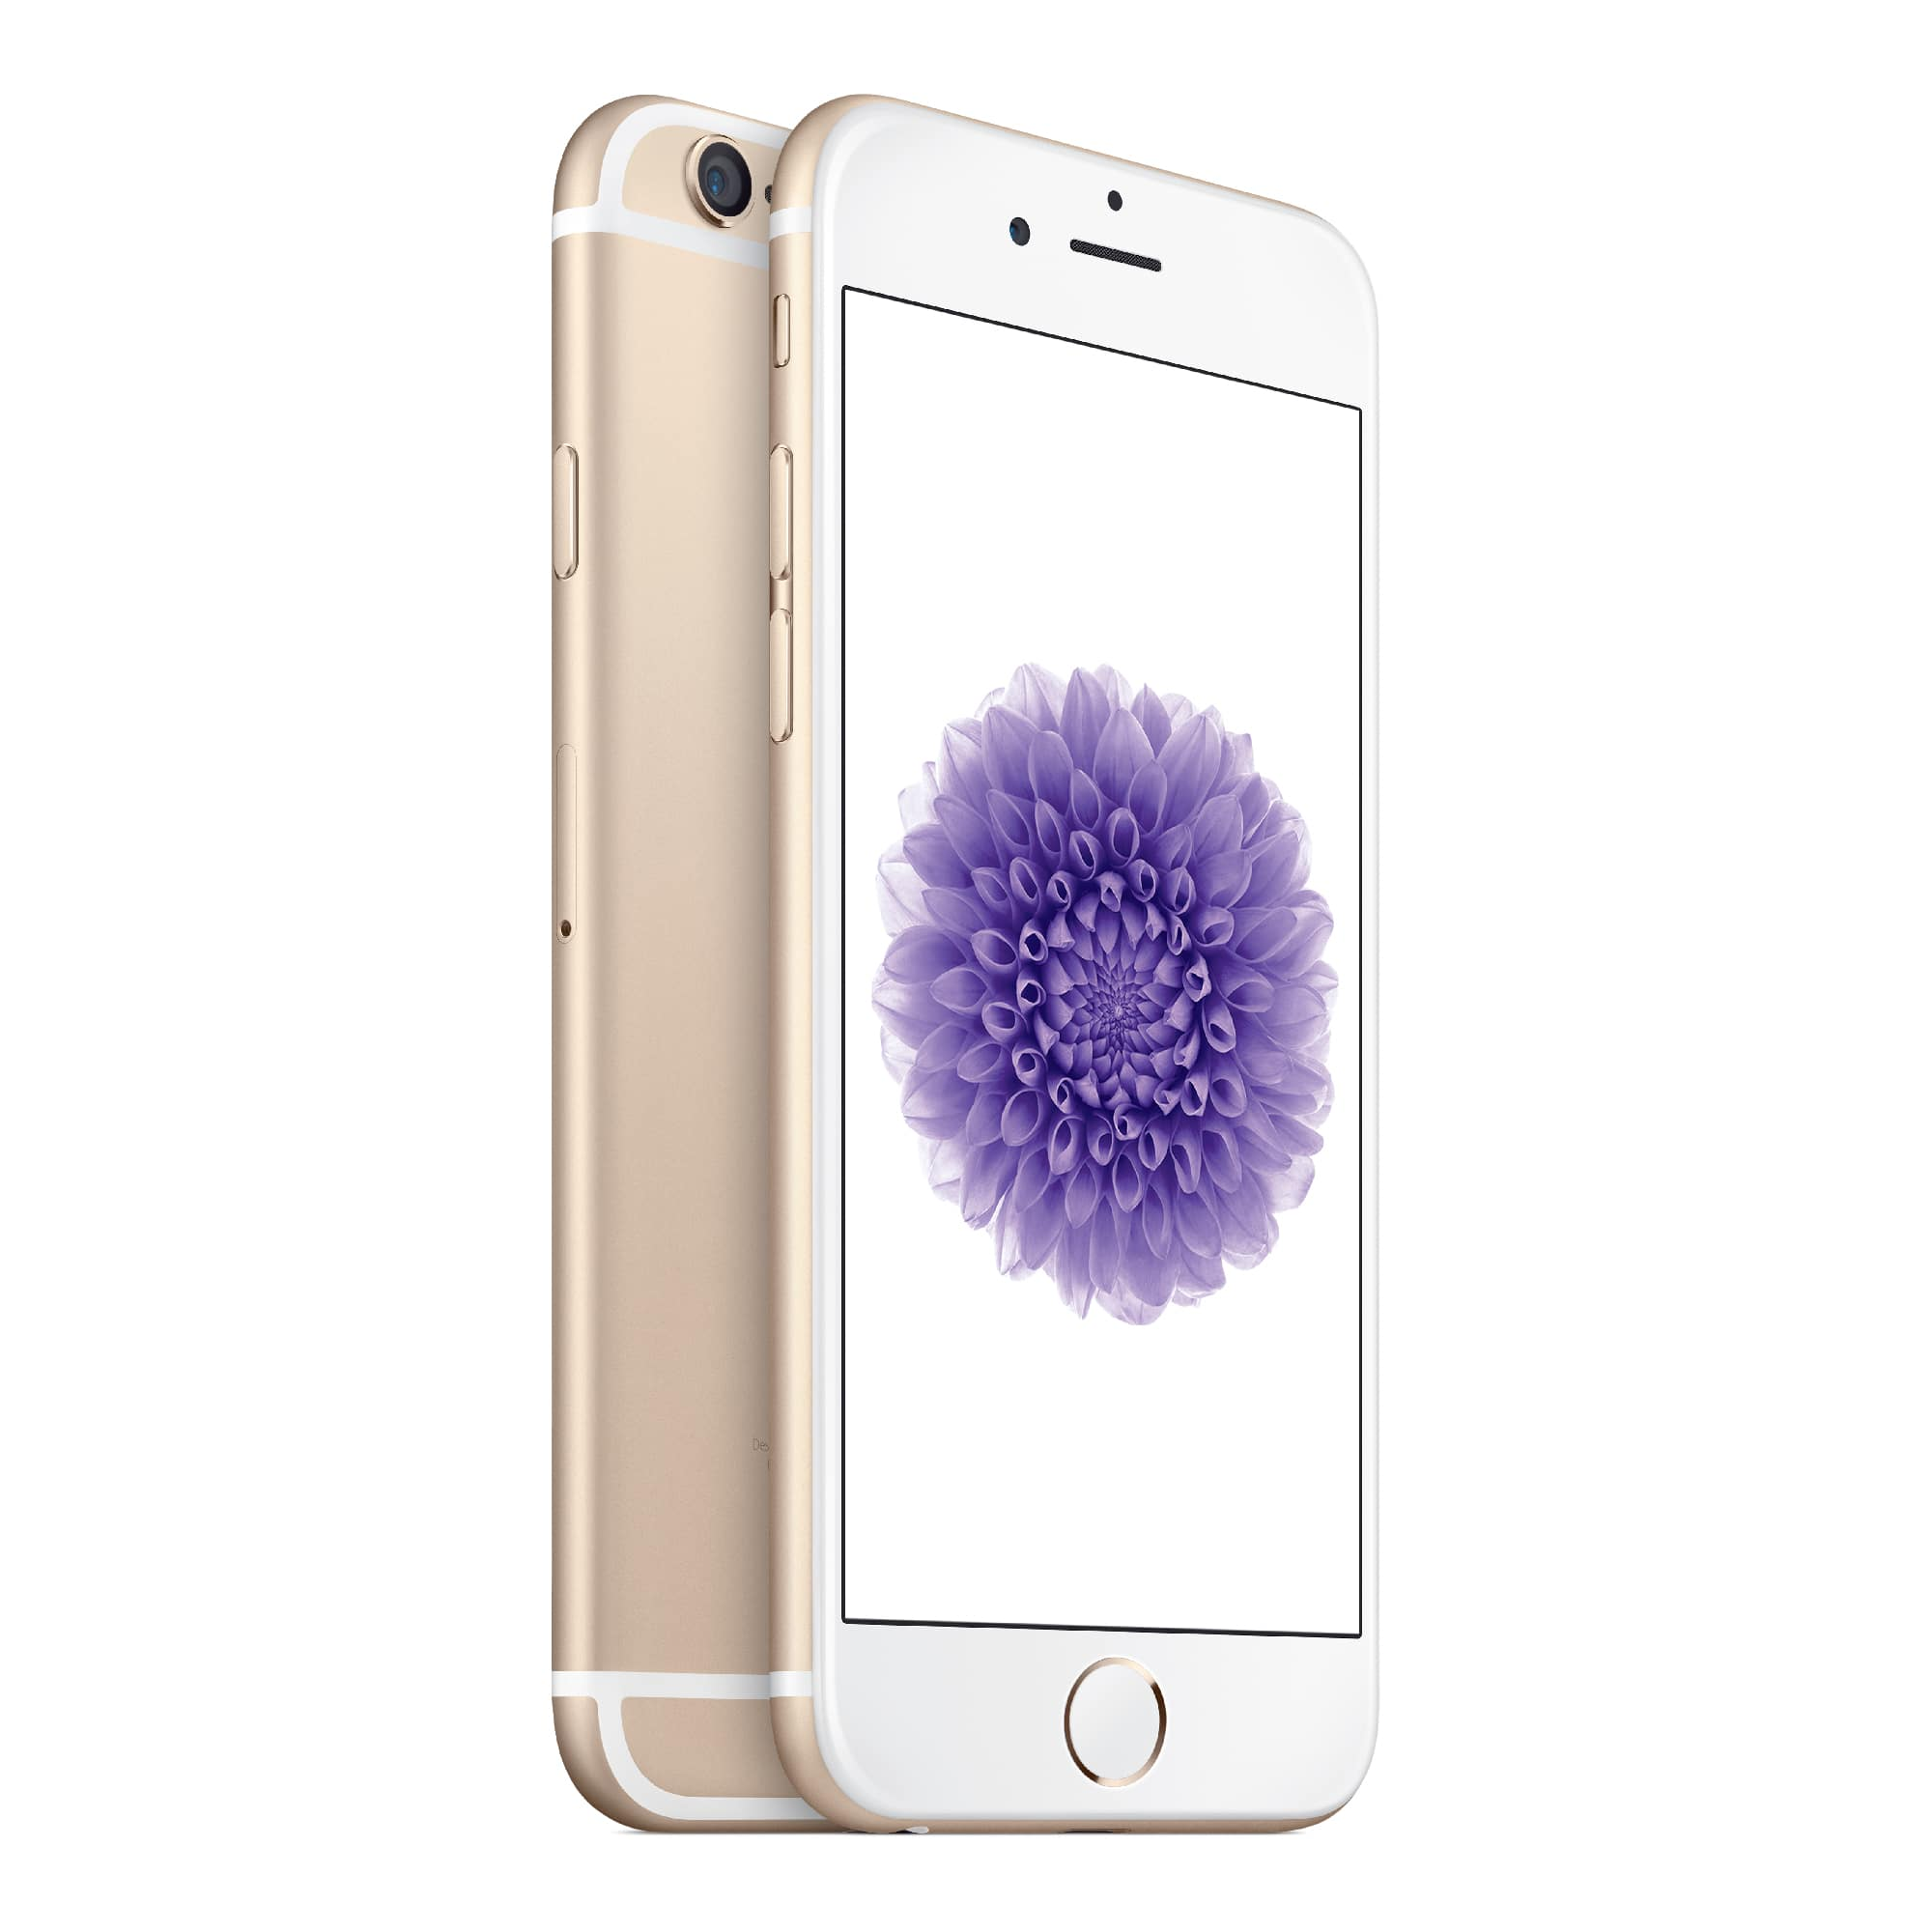 Straight Talk New iPhone 6 - $99 (same as Black Friday)